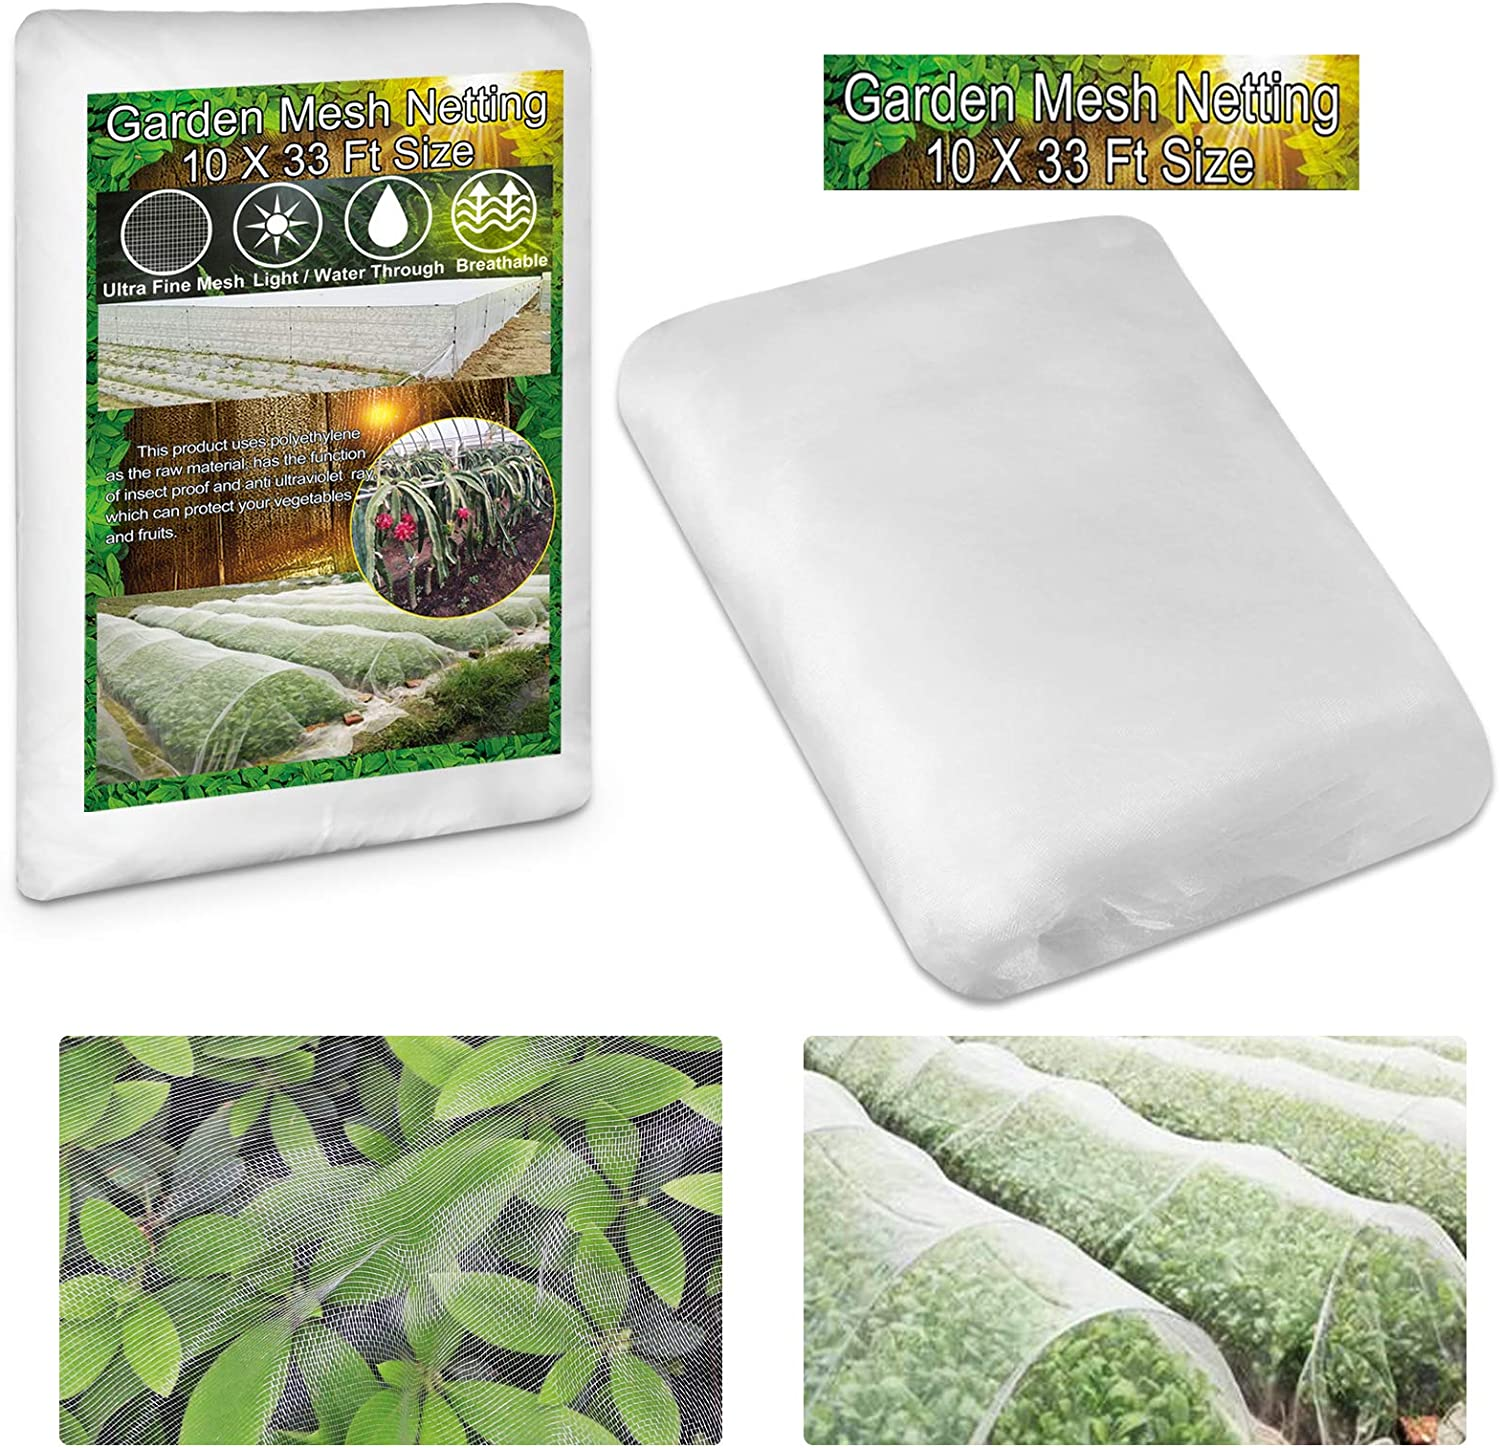 KY-YPFW 10x33 Ft Garden Netting Plant Covers - 0.032